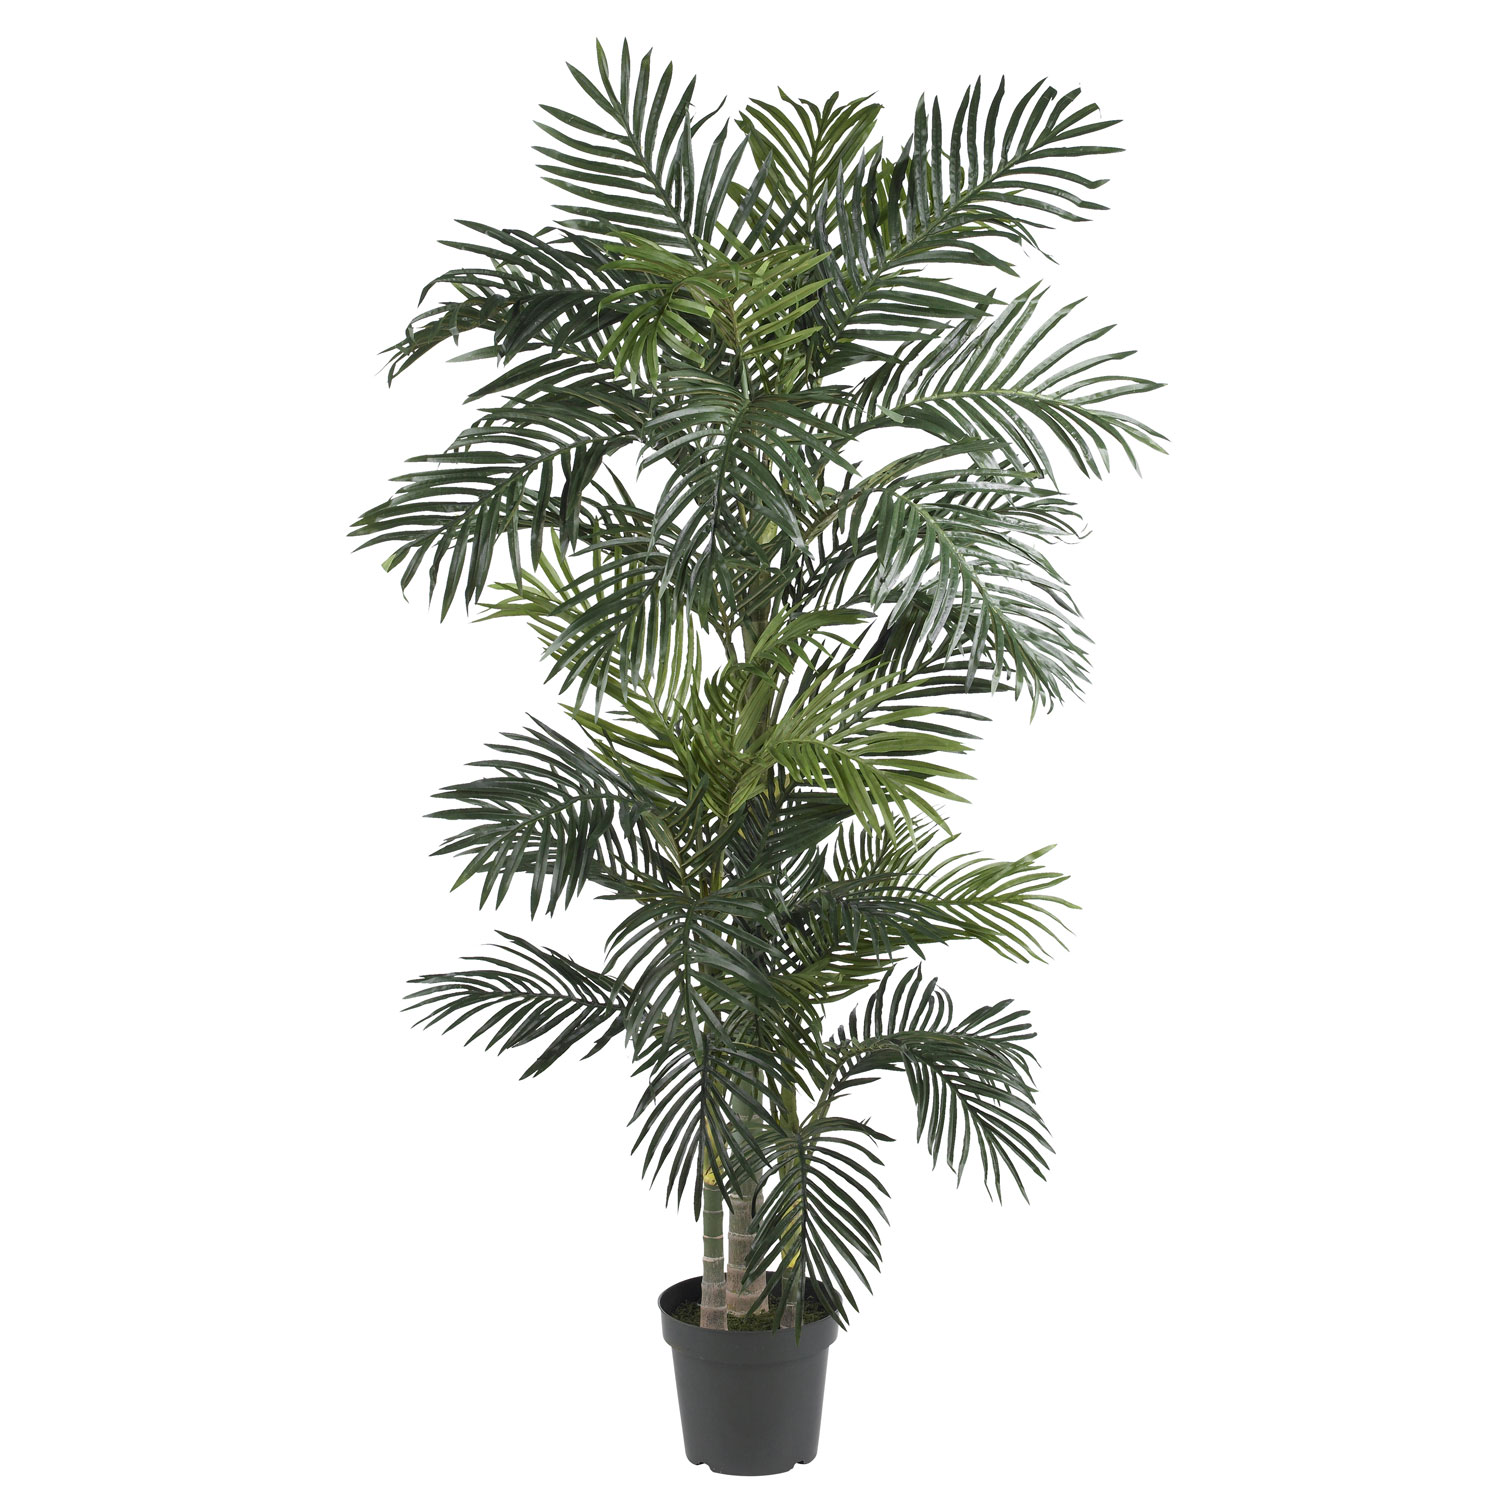 6.5 foot Golden Cane Palm Tree: Potted 5289